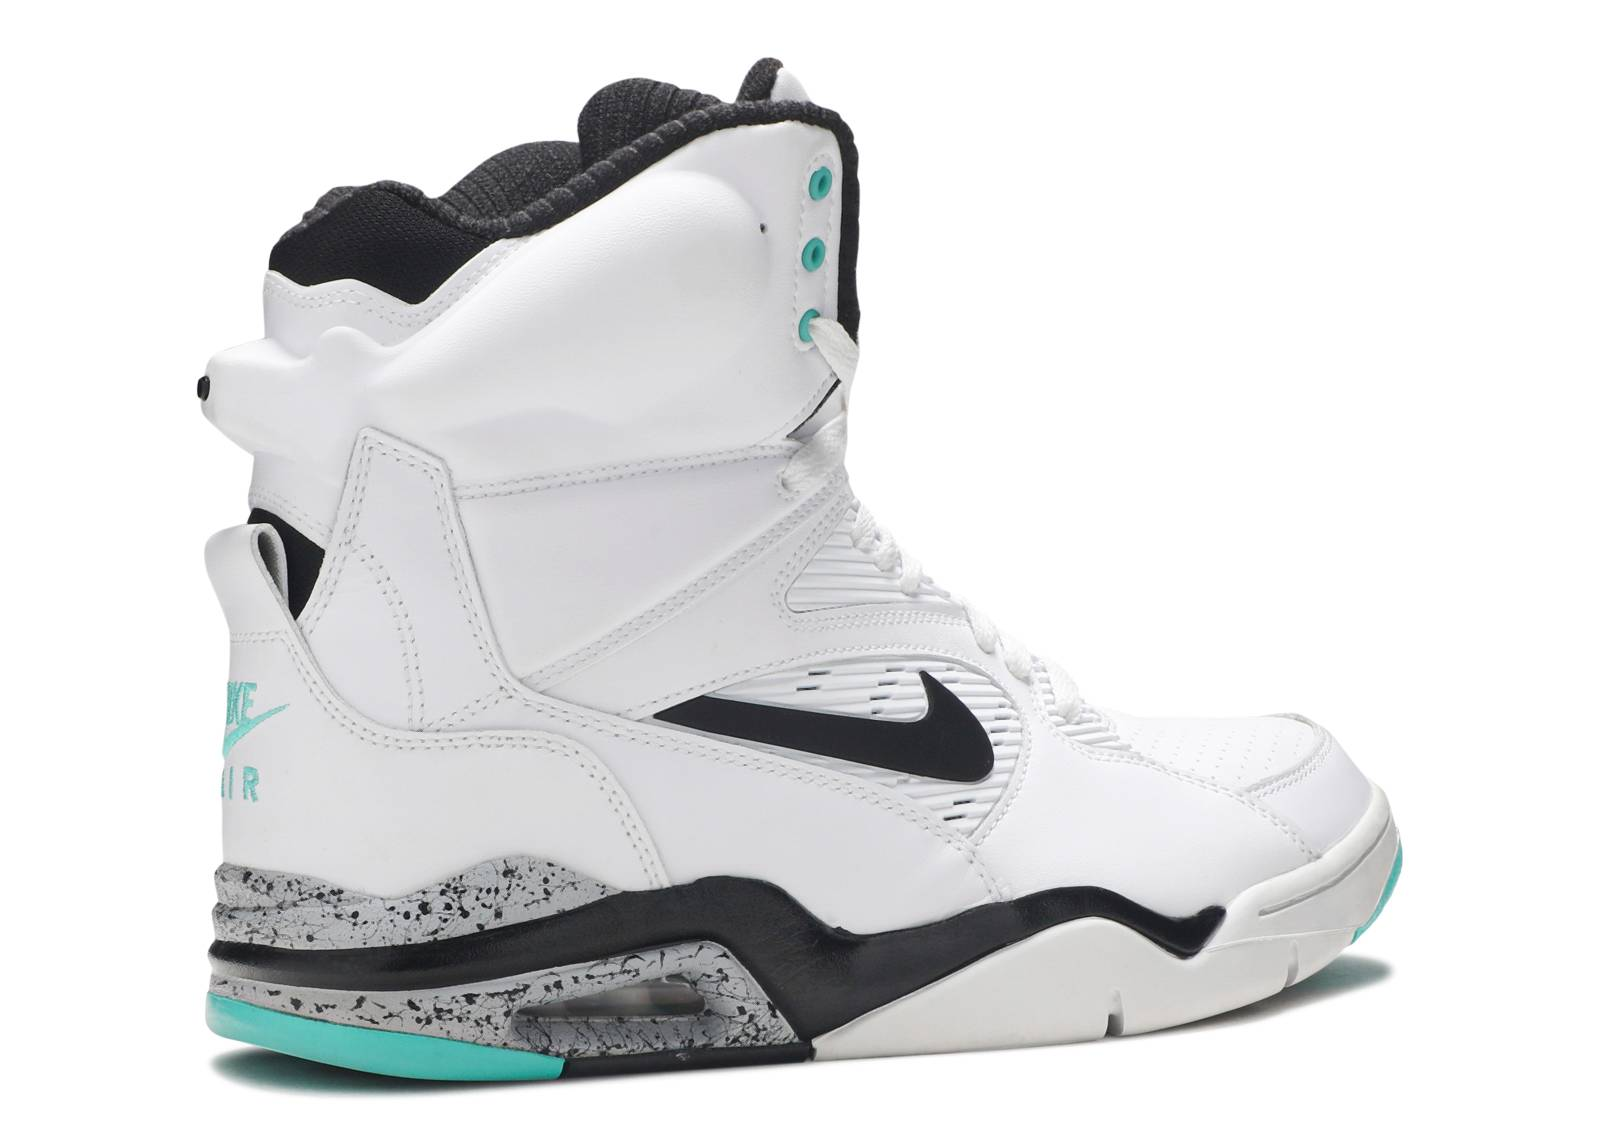 038a4ede493 Air Command Force - Nike - 684715 102 - white black-wolf grey-hypr ...